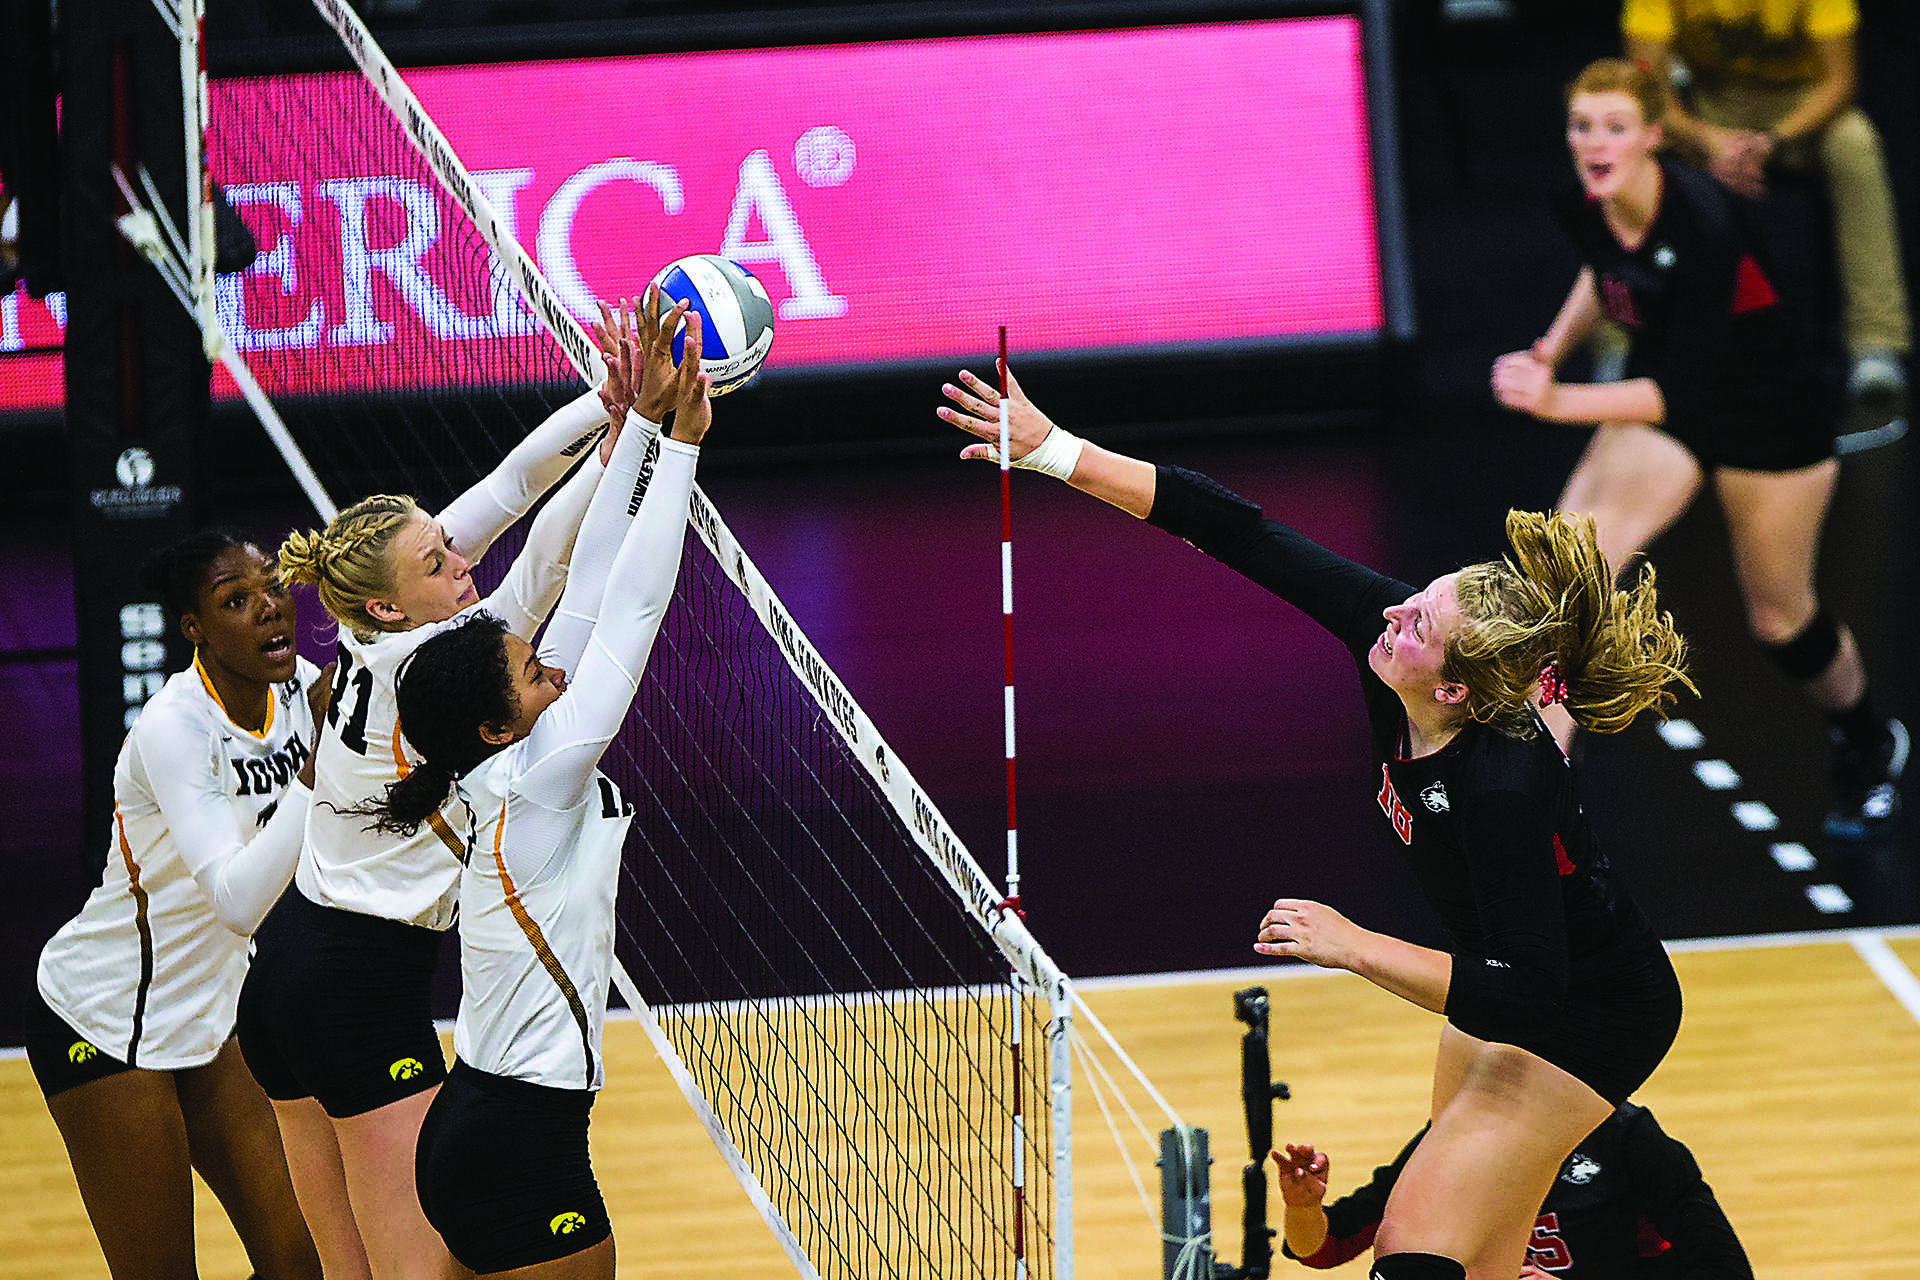 Iowa's Taylor Louis, Kelsey O'Neill, and Brie Orr block a spike during the match between Iowa and Northern Illinois inside Carver-Hawkeye Arena on Friday, Sept. 8, 2017. The Hawkeyes went on to defeat the Huskies 3-0. (Ben Smith/The Daily Iowan)